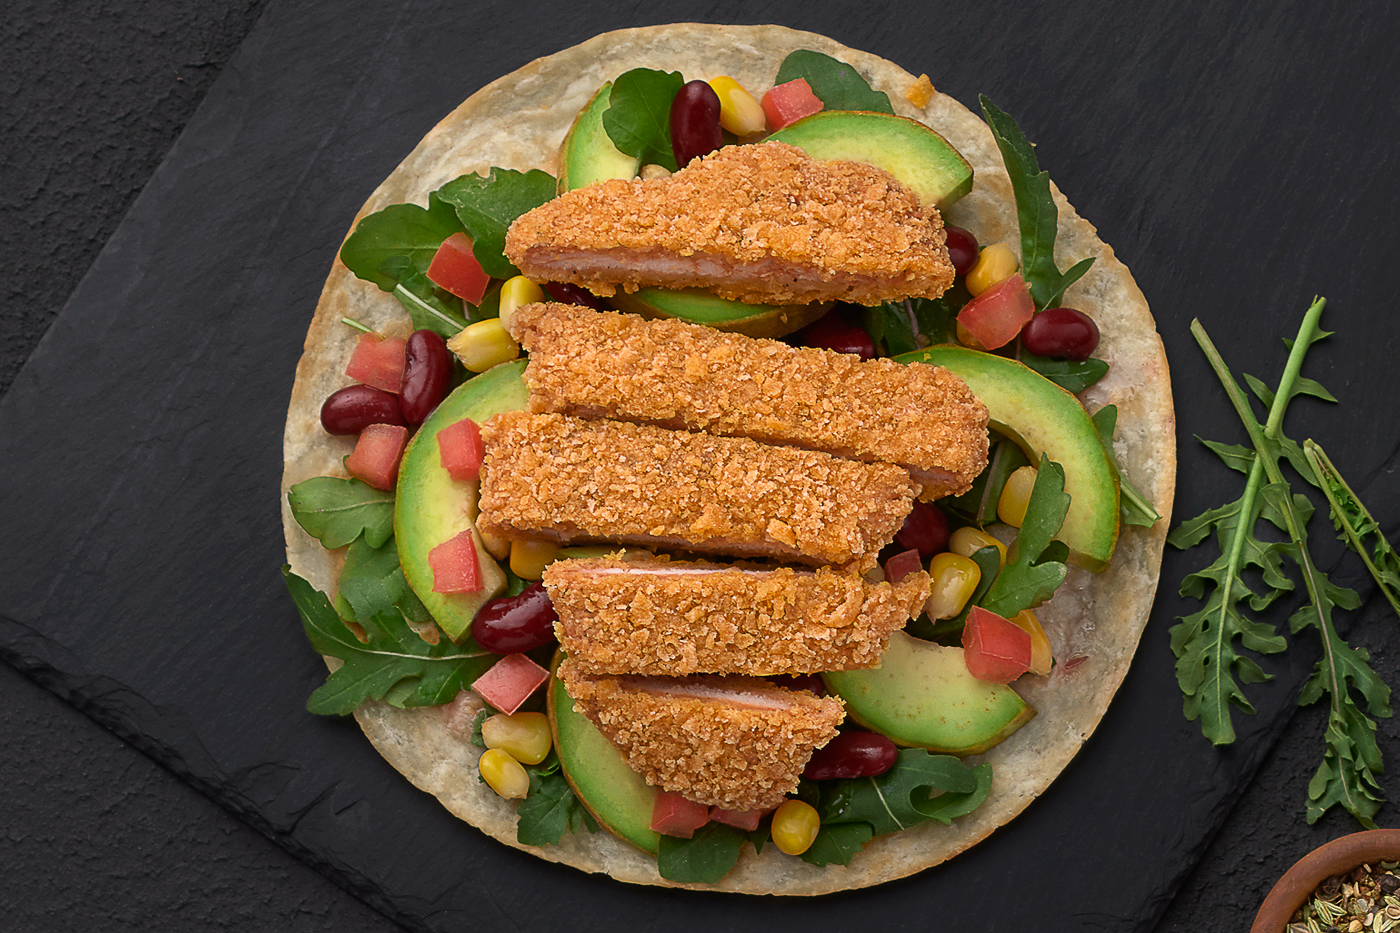 Chicken, Avocado, Red Beans, tomatoes، Rocca